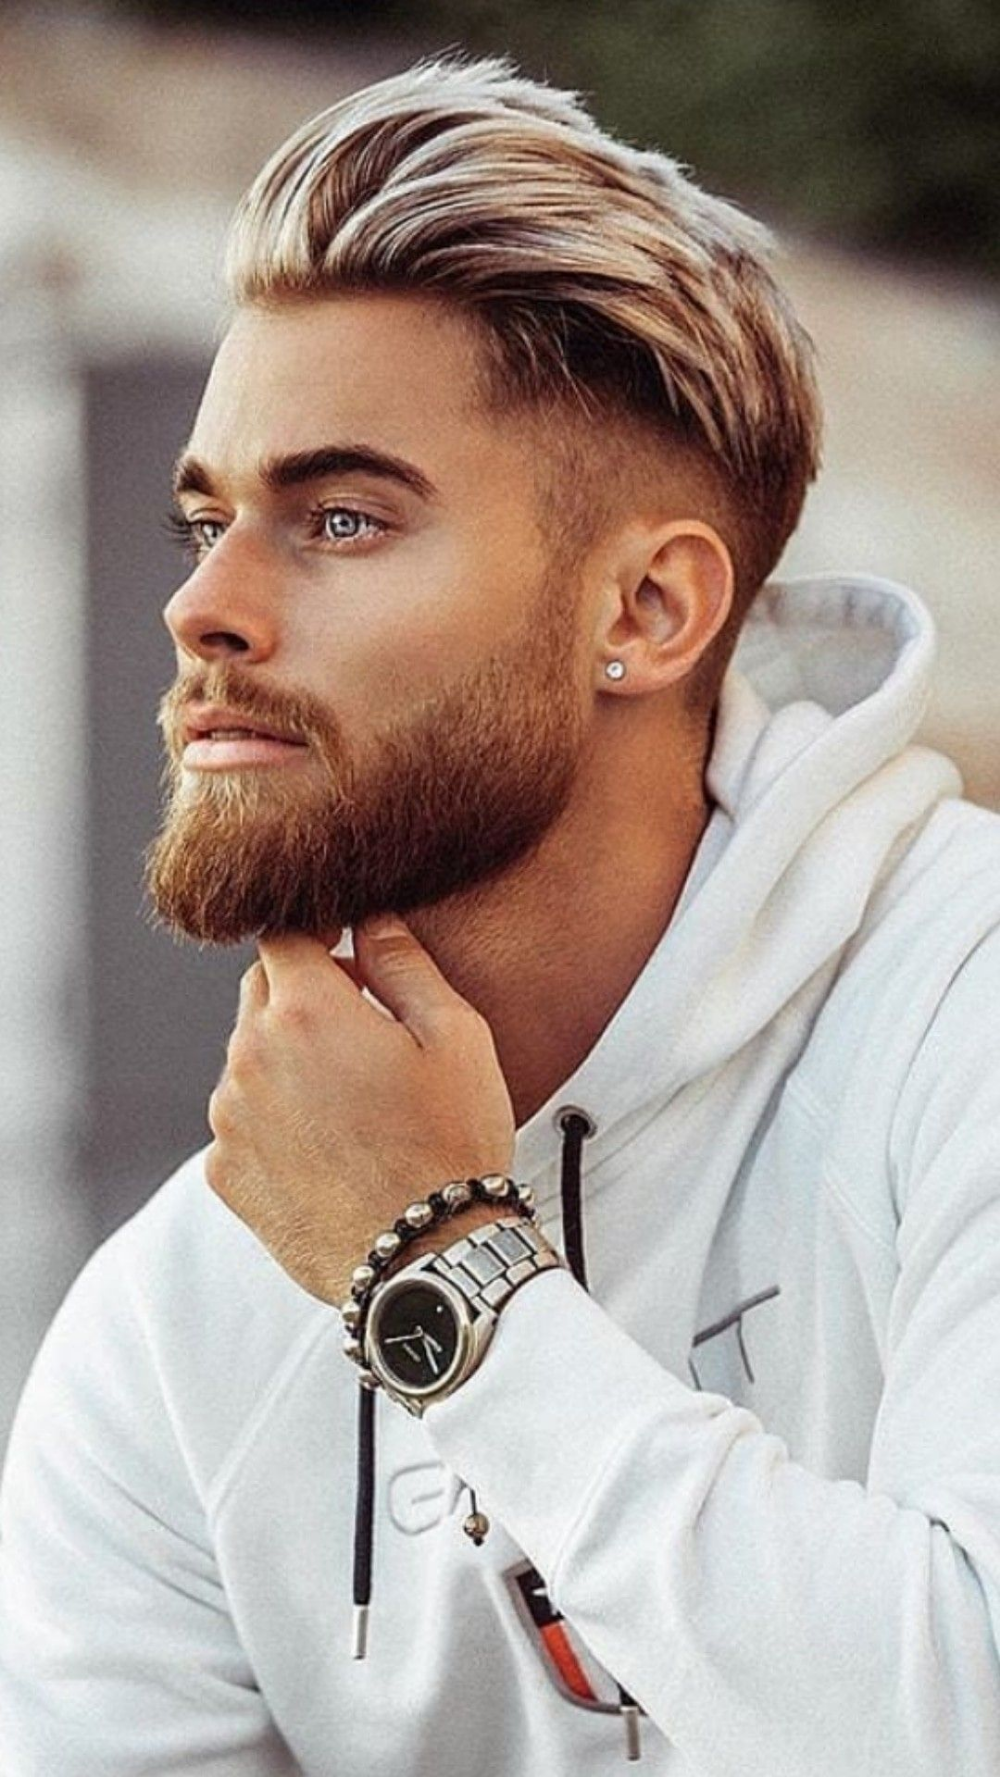 25 Ultra Dashing Moyenne Coiffures Pour Garcons In 2020 Medium Beard Styles Mens Haircuts Short Mens Hairstyles Medium